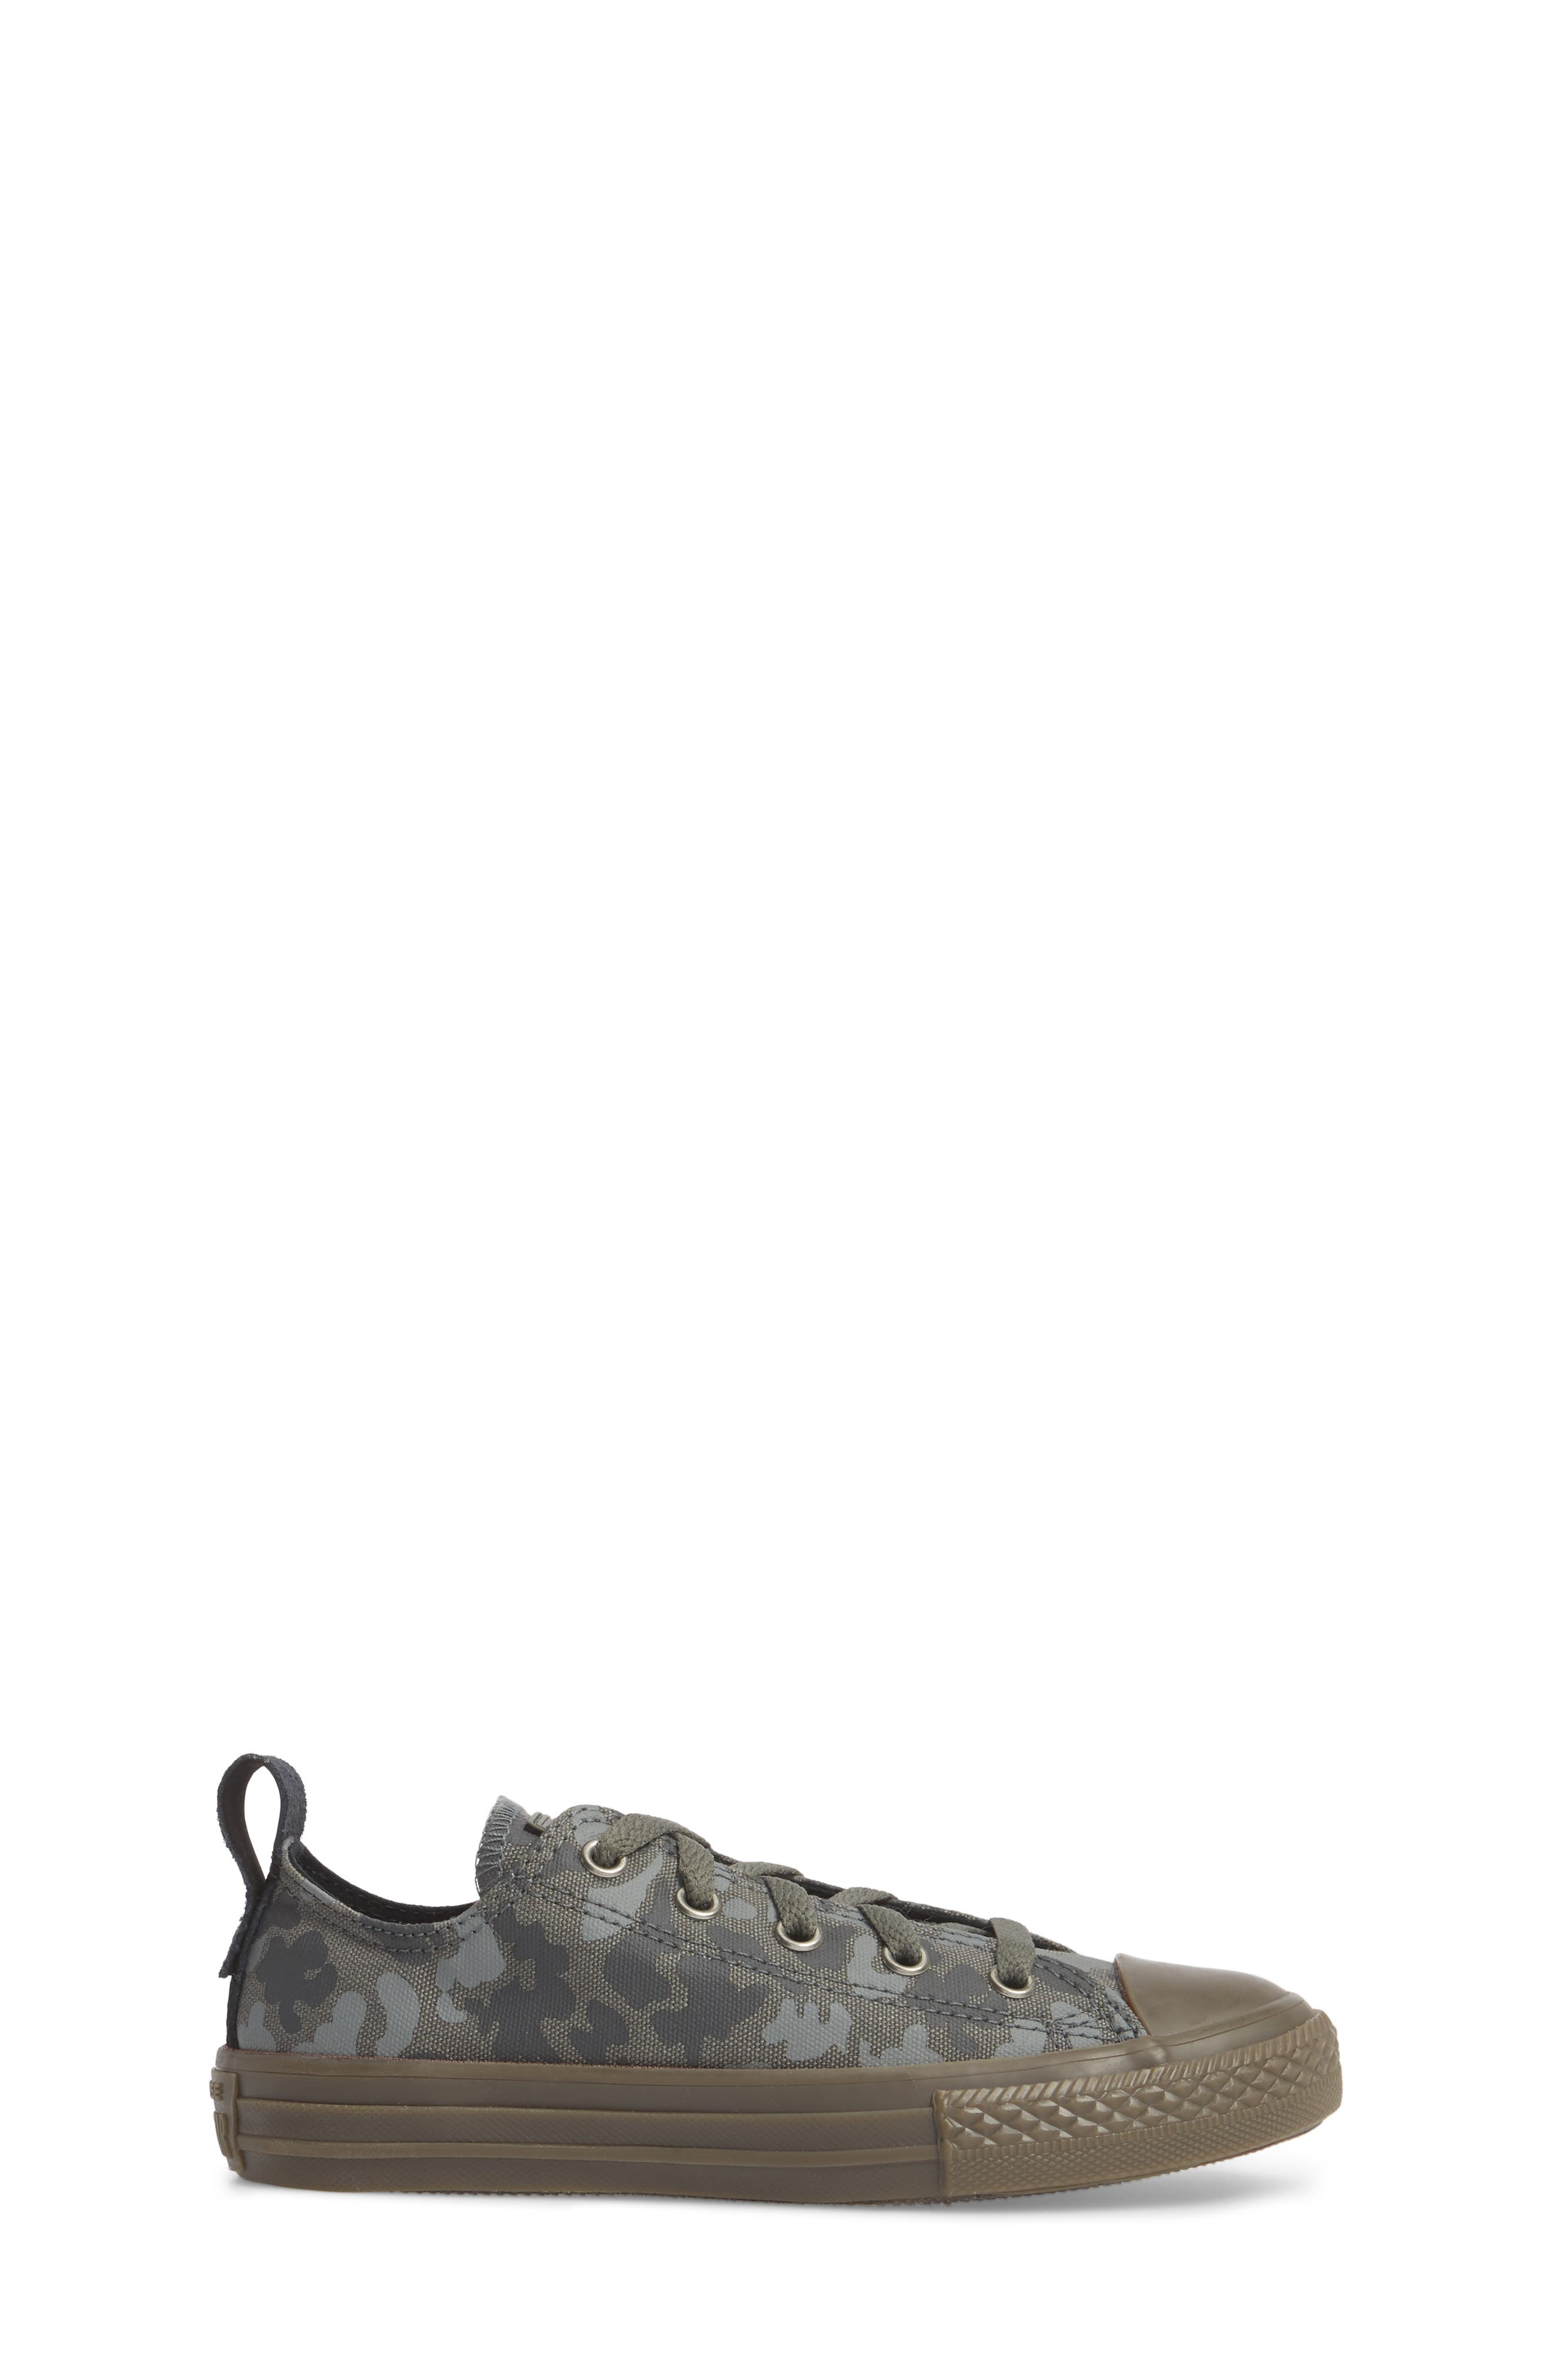 Chuck Taylor<sup>®</sup> All Star<sup>®</sup> Camo Ox Low Top Sneaker,                             Alternate thumbnail 3, color,                             Mason